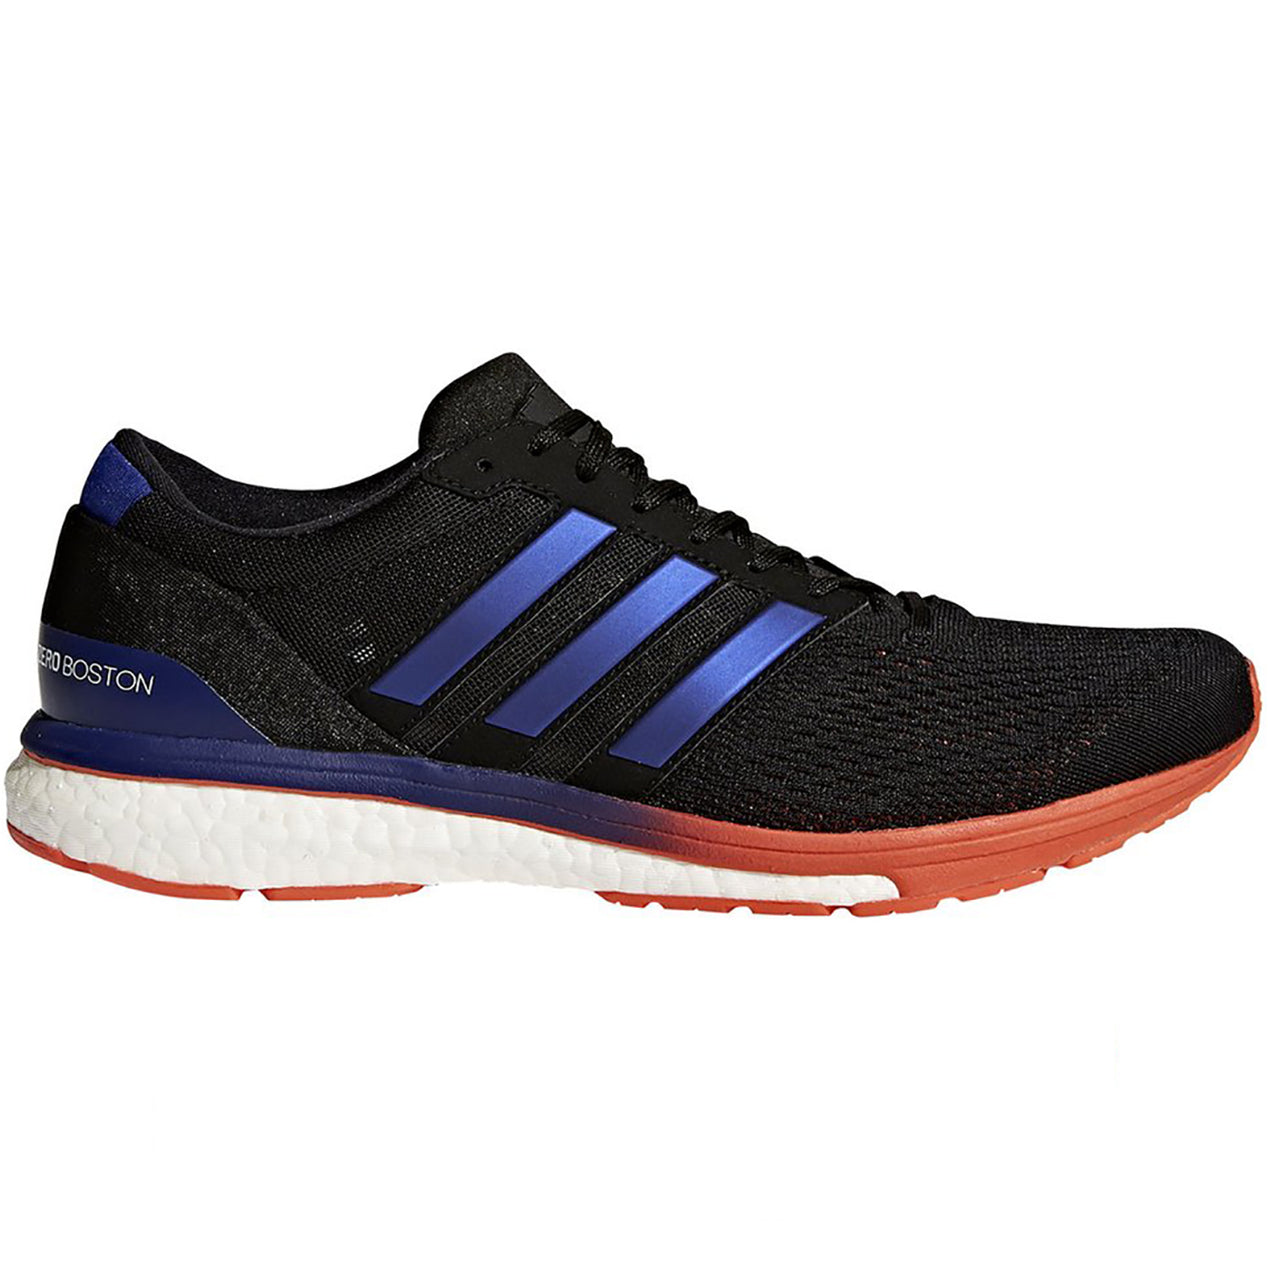 6 ShoesAltitude Men's Adidas Boston Adizero Running Sports AjL45R